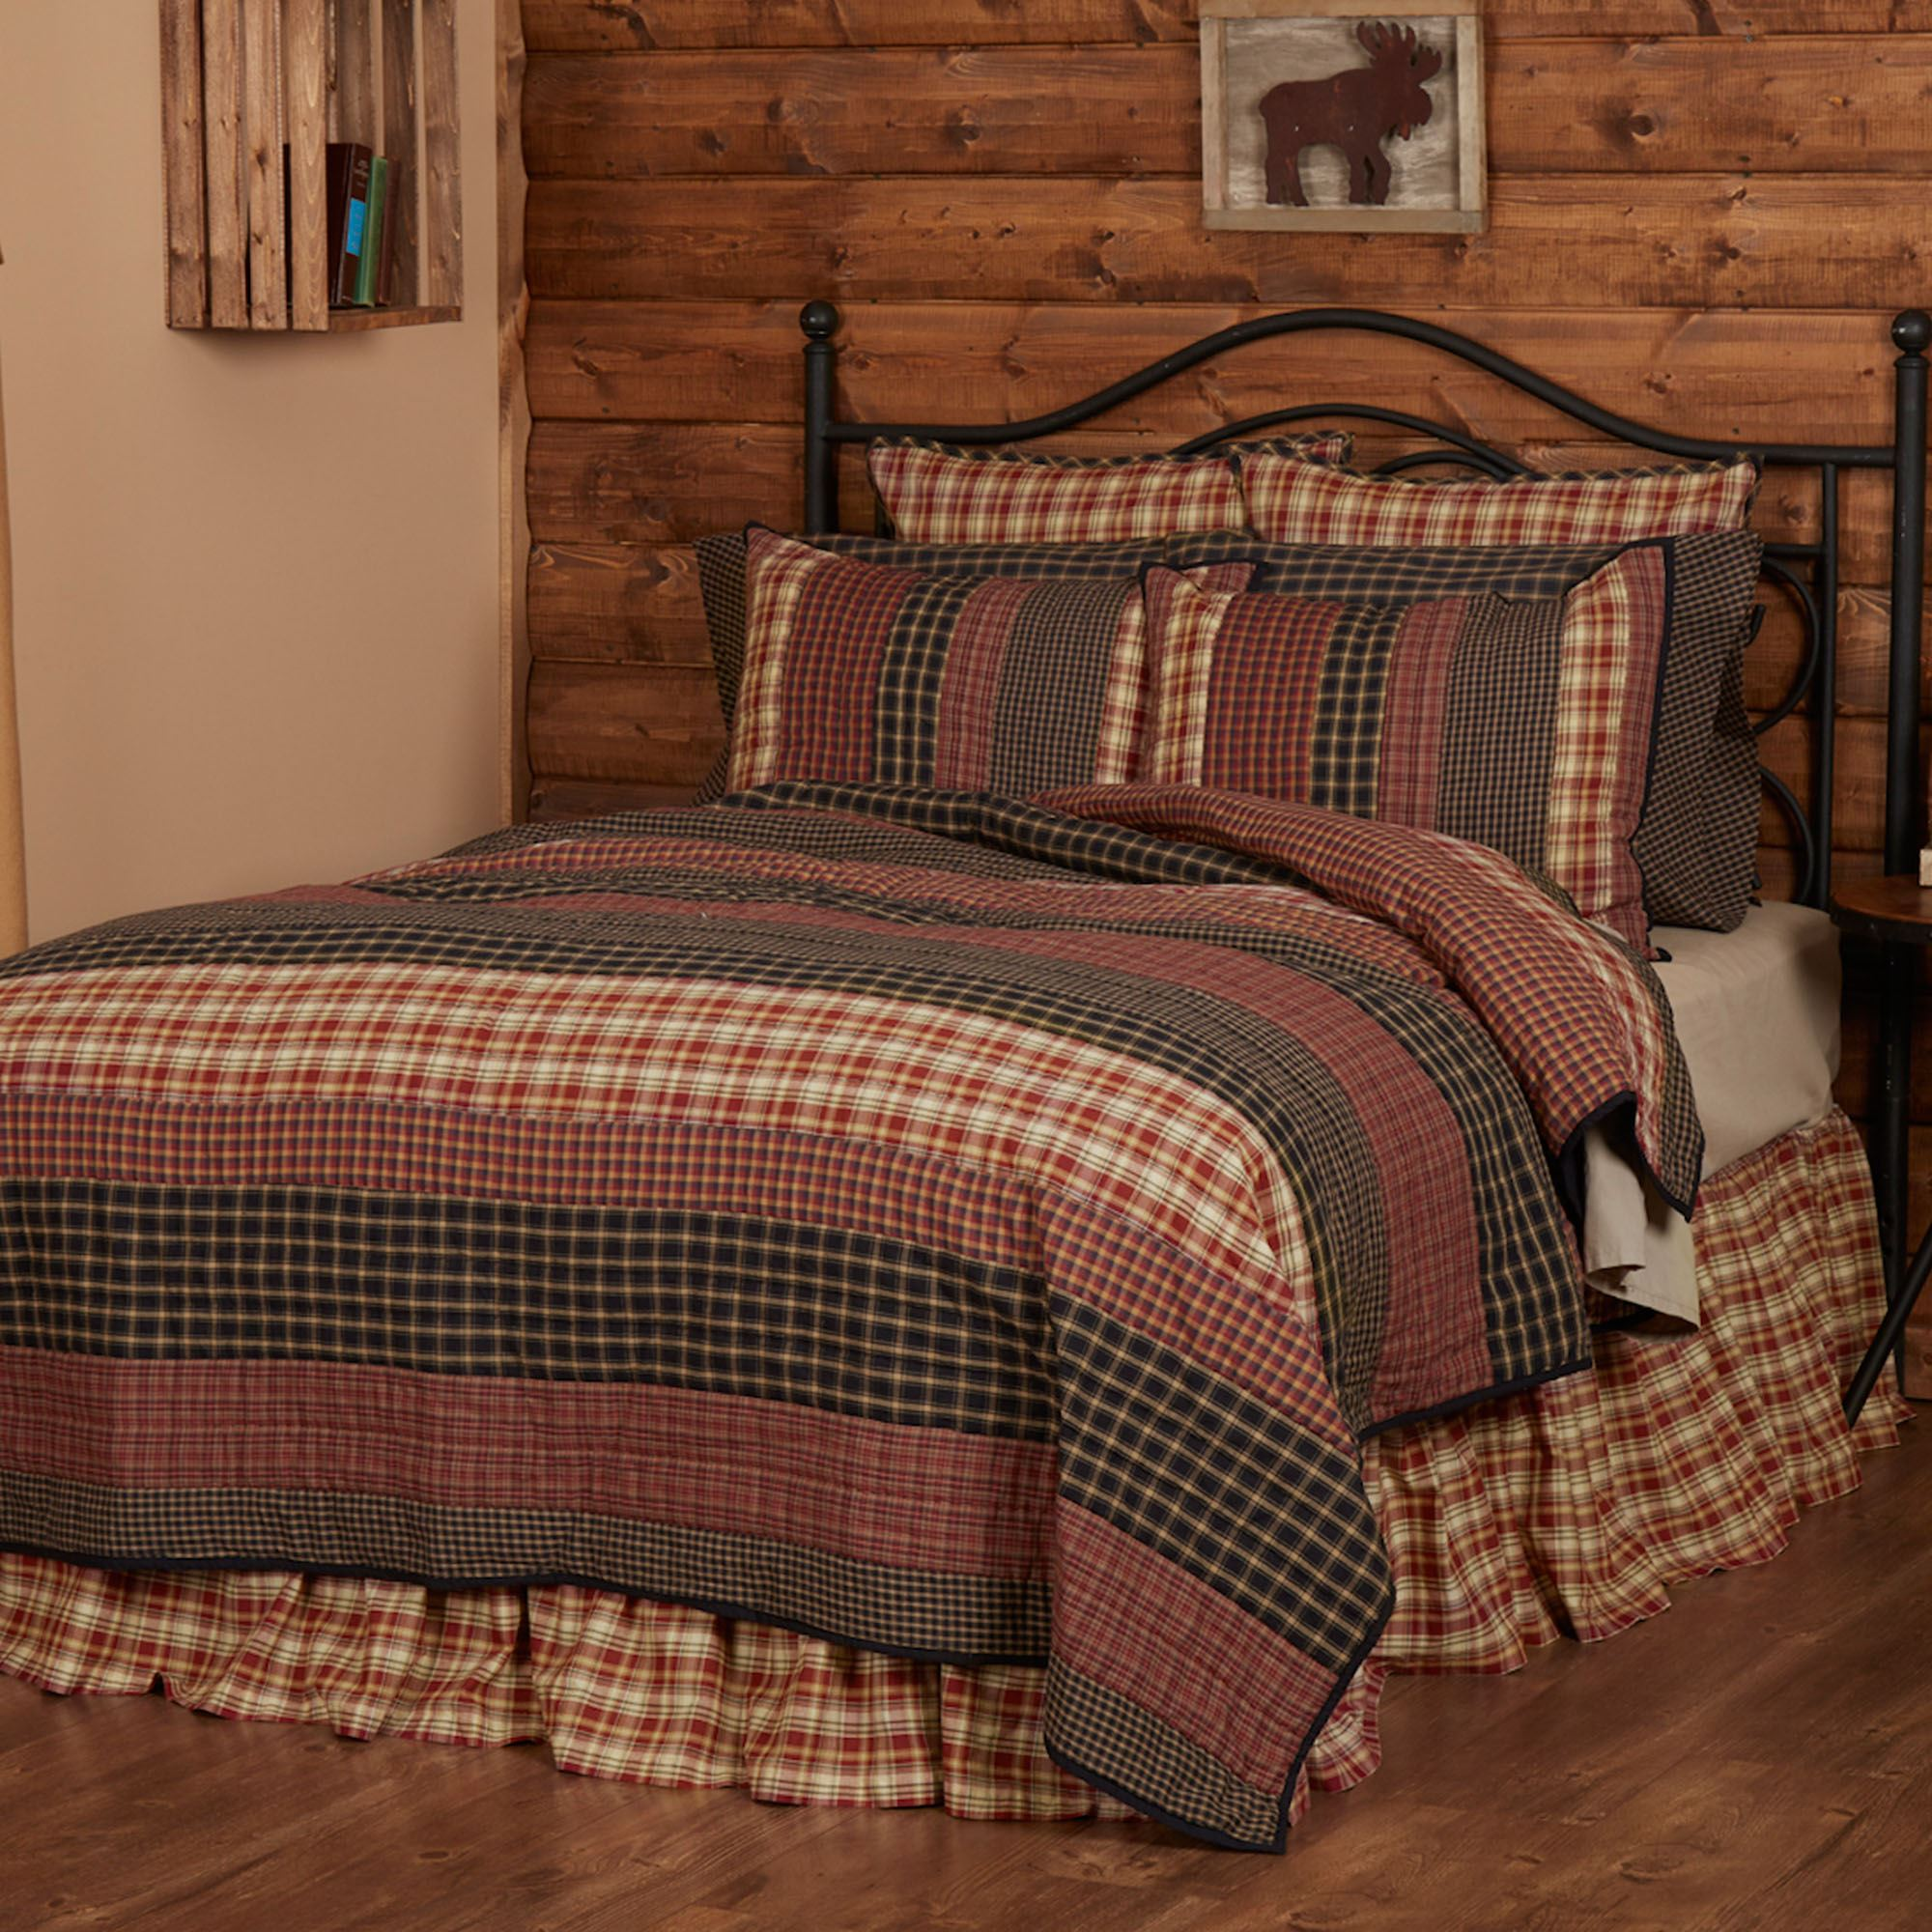 Beckham Rustic Plaid Quilt Set : plaid comforters and quilts - Adamdwight.com